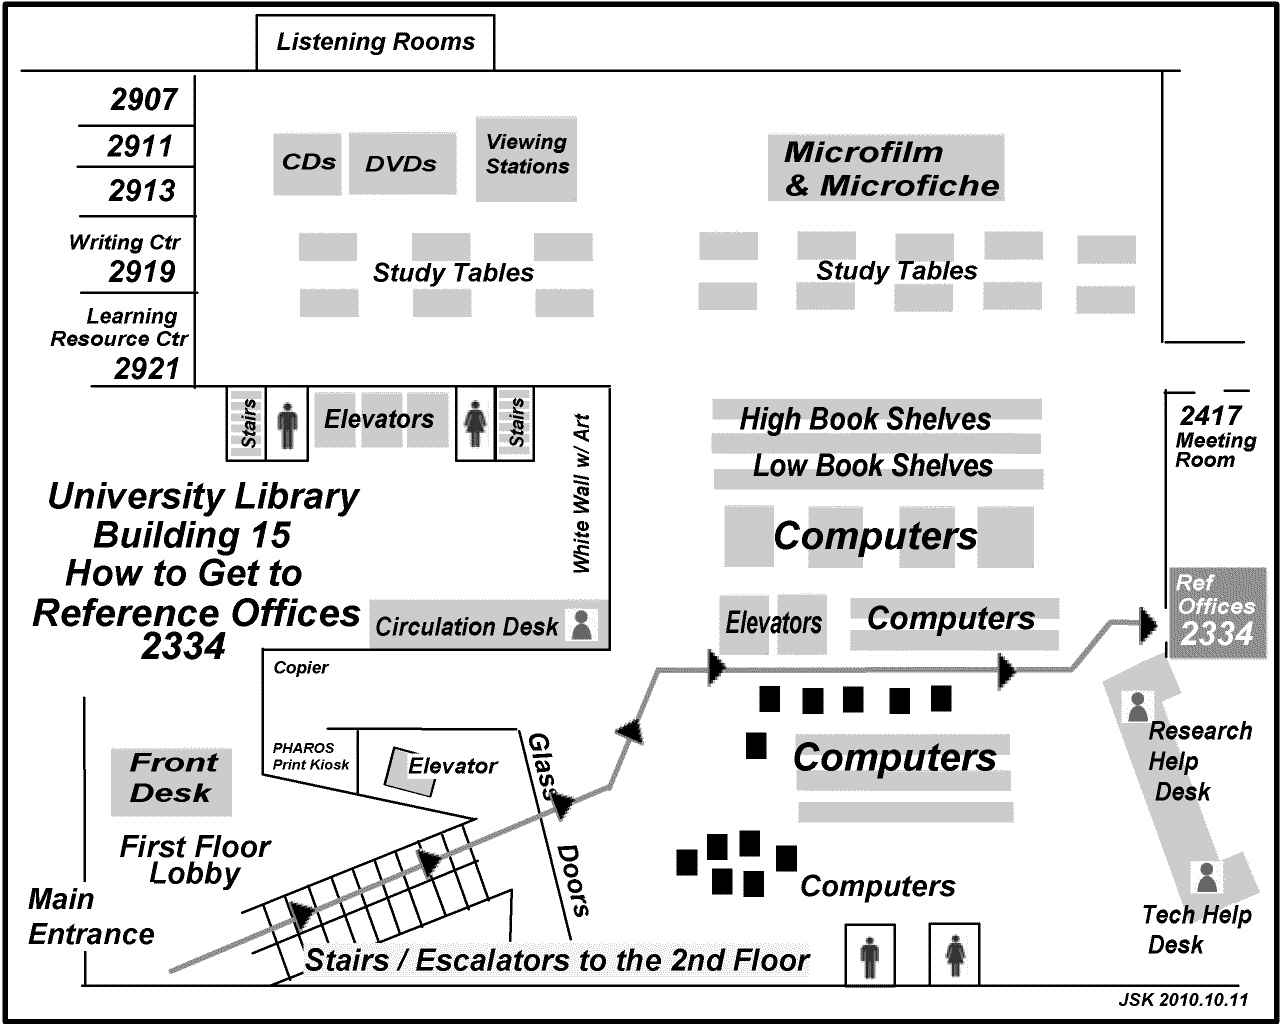 Map showing the way to the Reference Offices